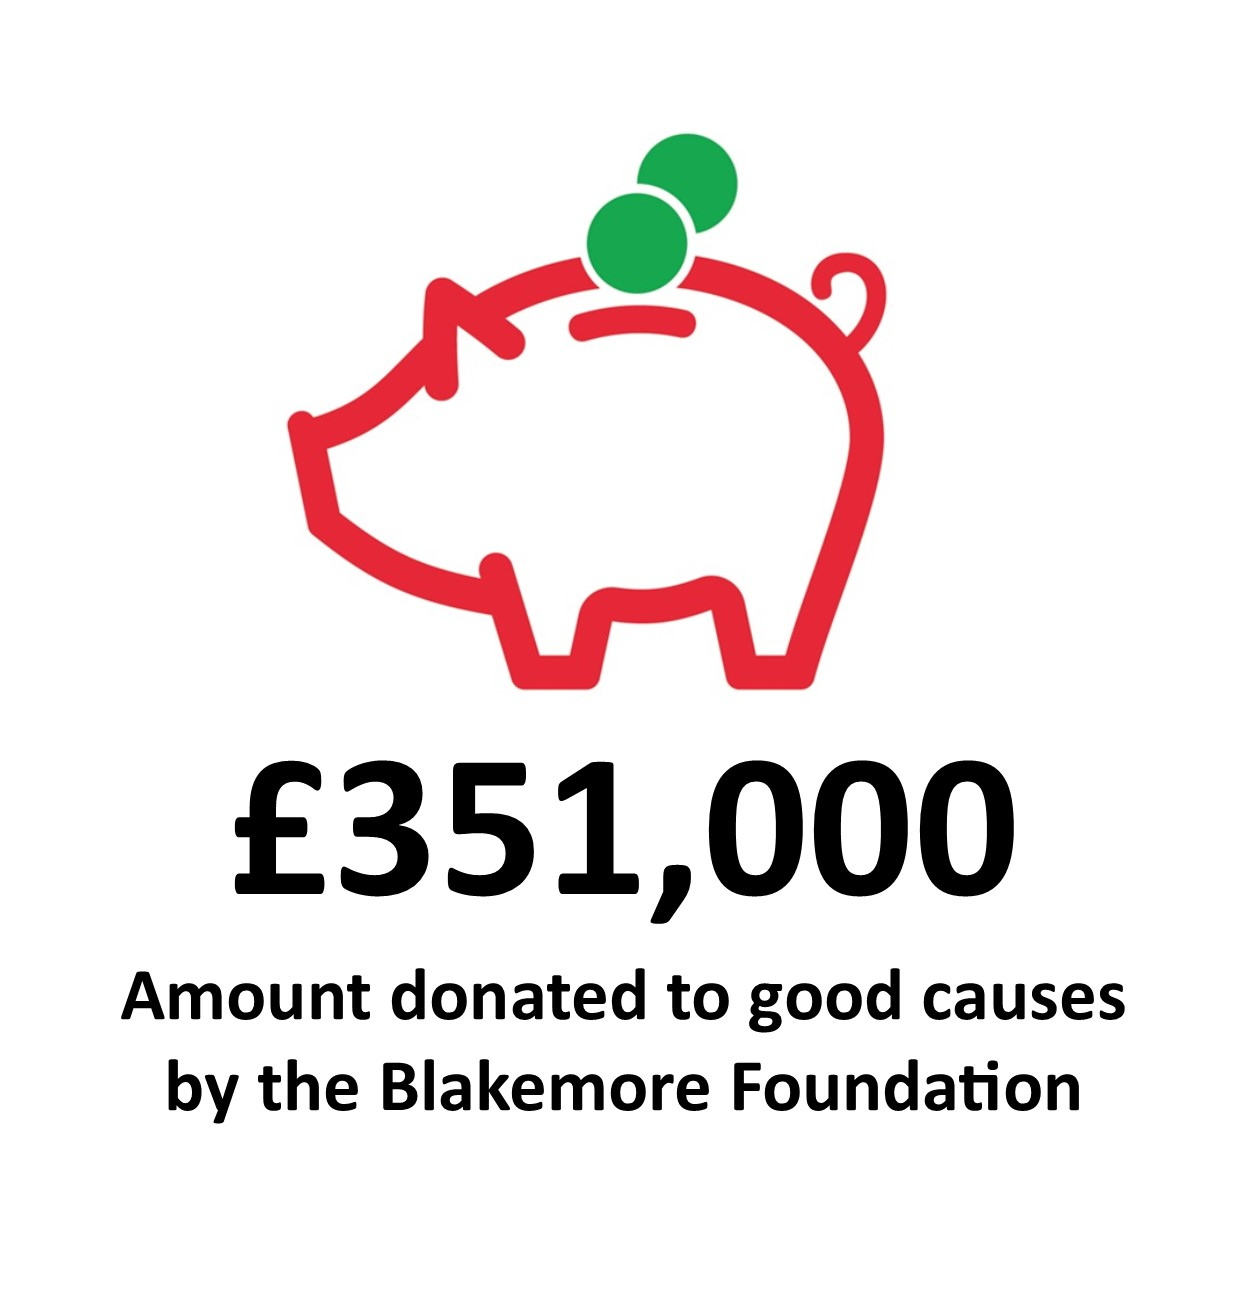 Amount_donated_to_good_causes_by_the_Blakemore_Foundation